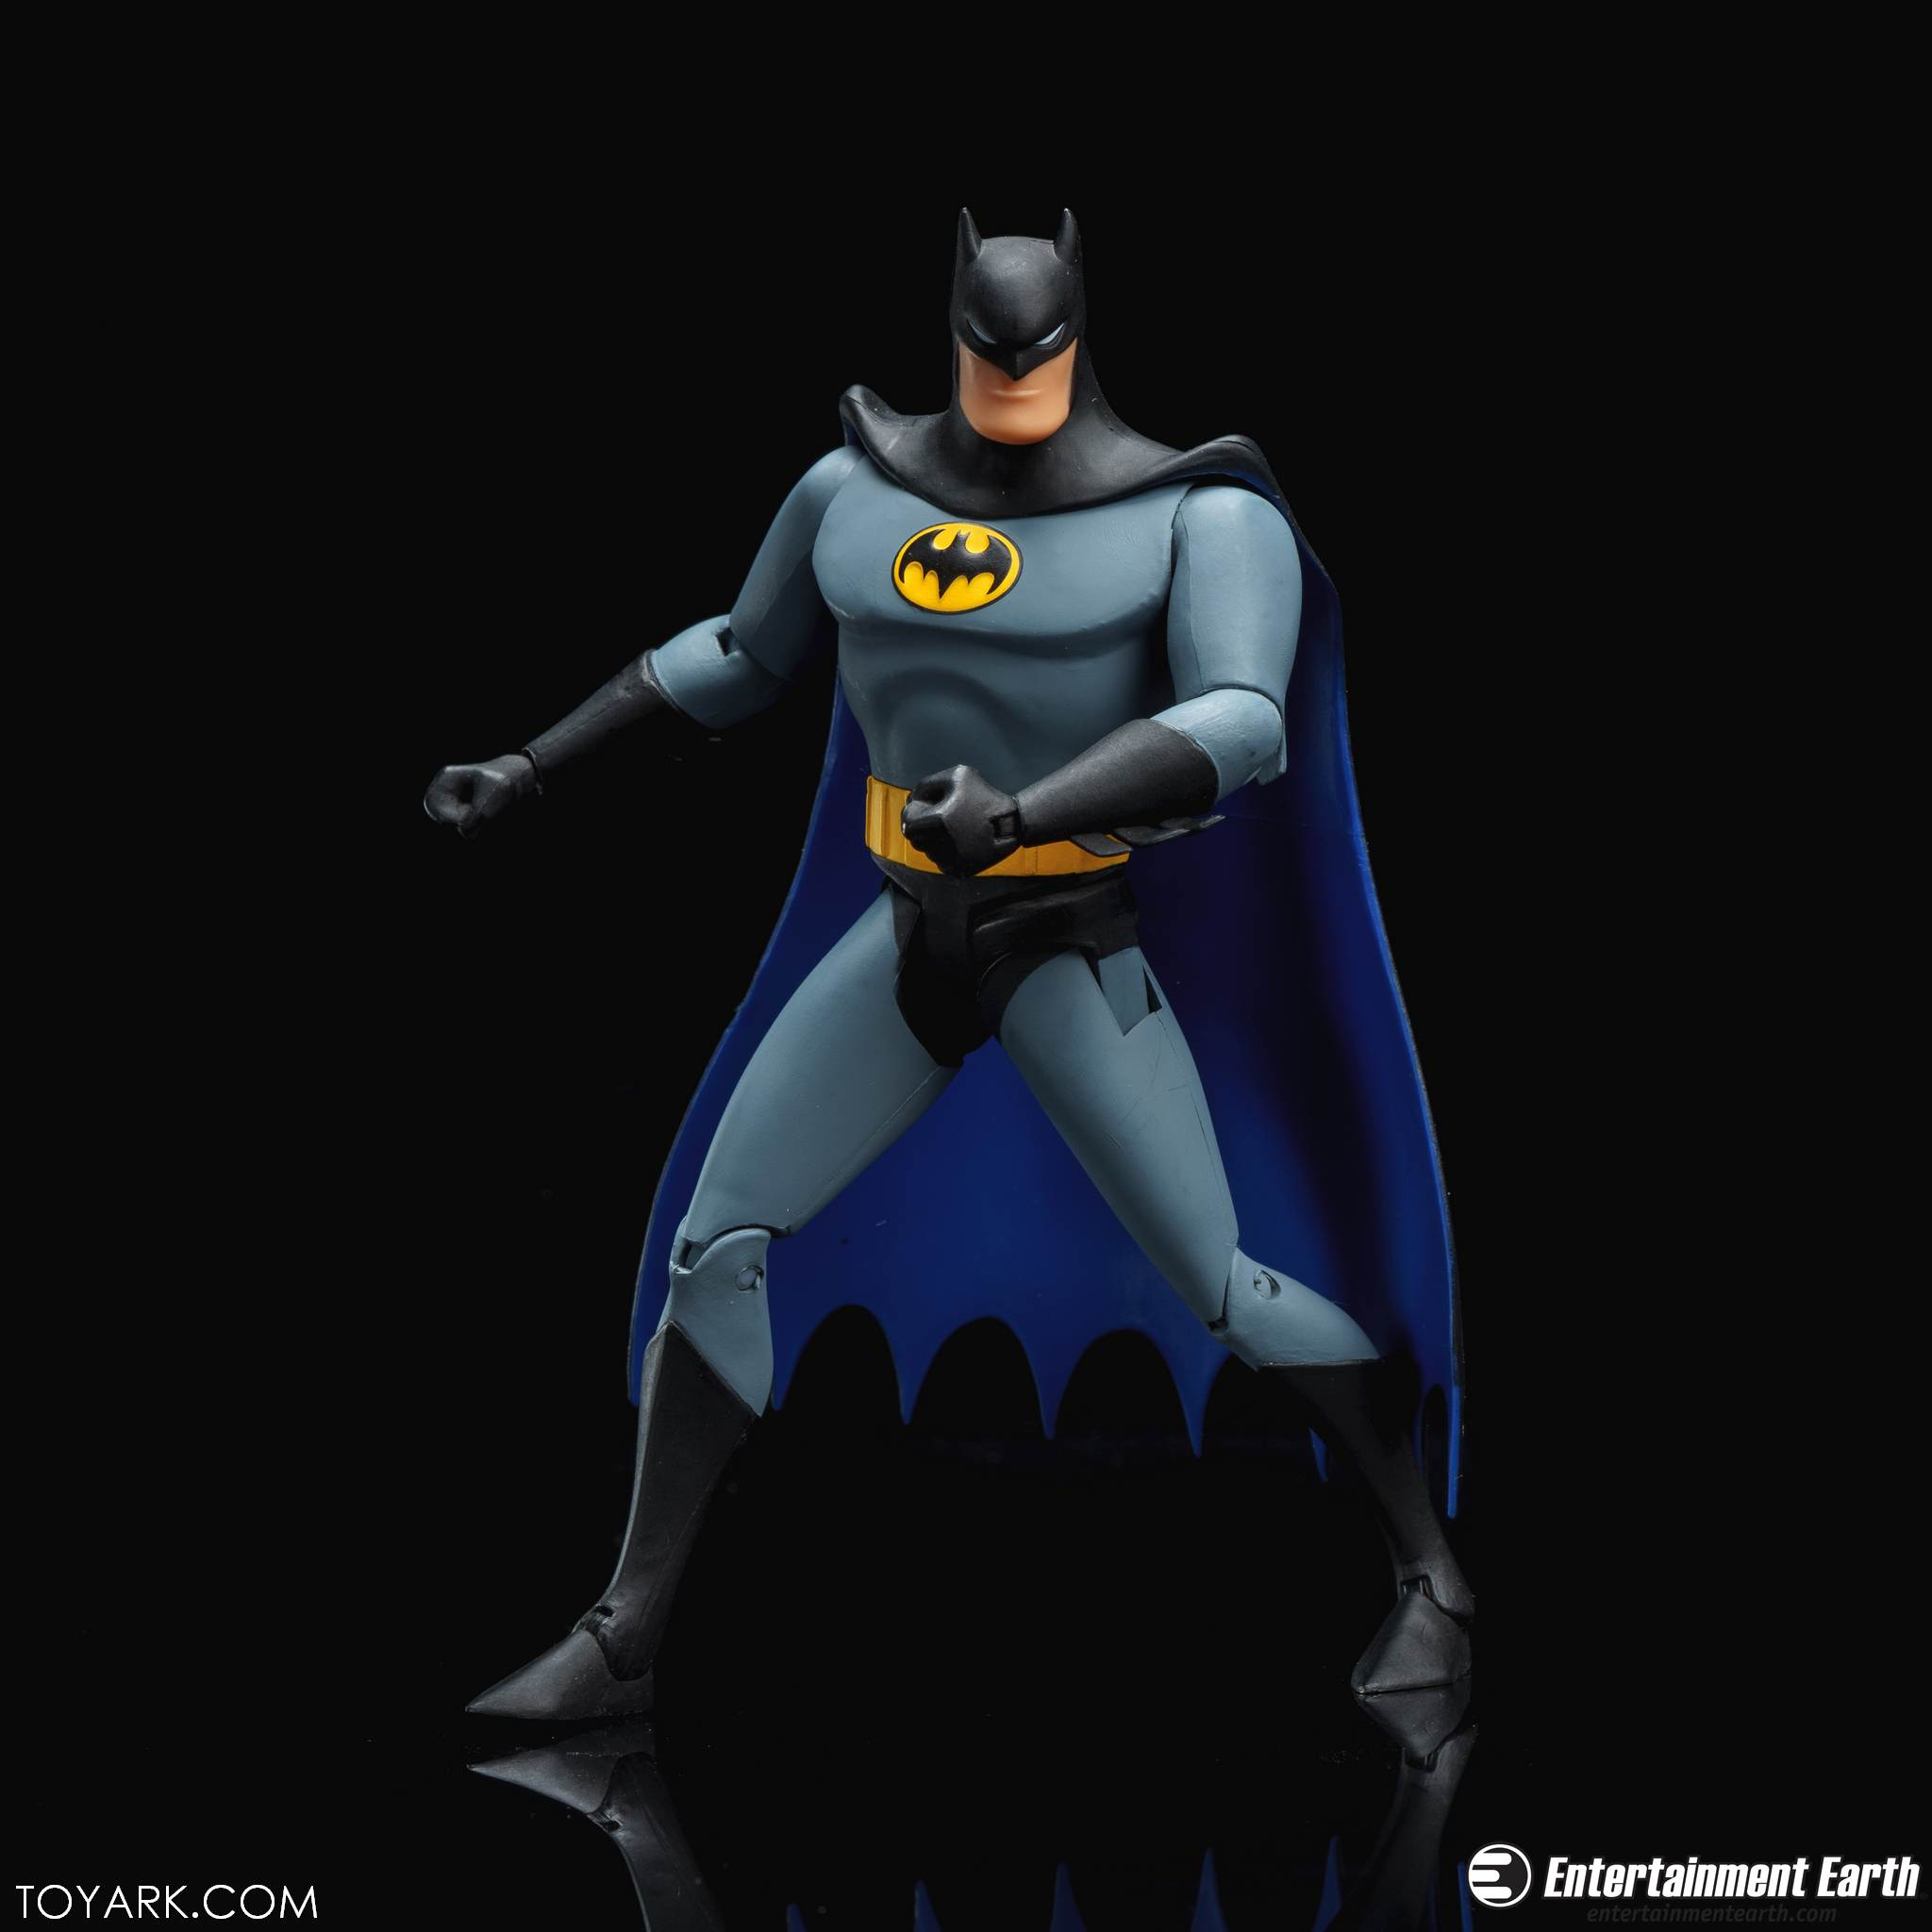 Dc collectibles batman animated batman btas batgirl - Batman cartoon images ...